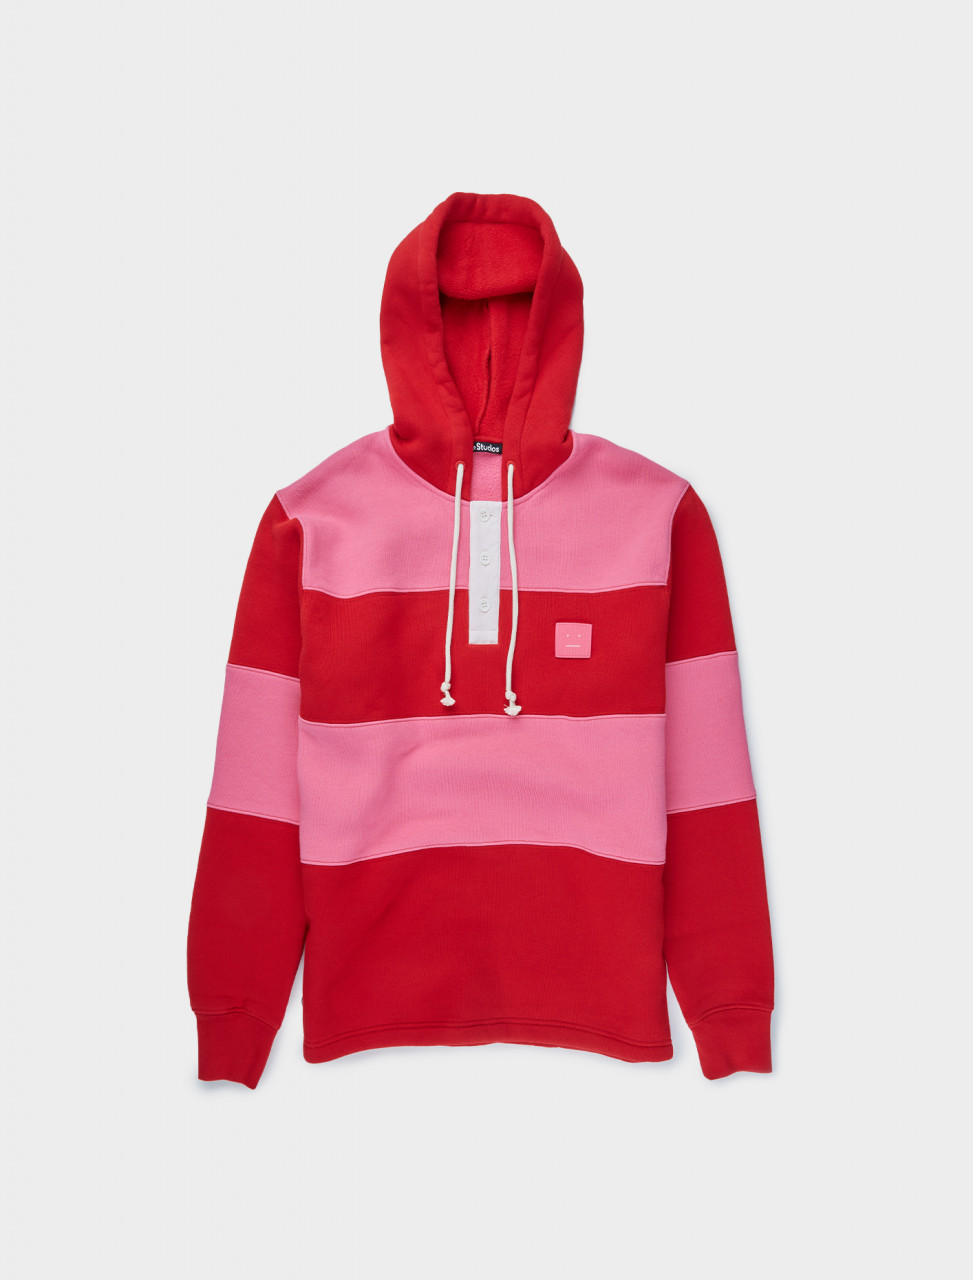 110-CI0044-AQJ ACNE STUDIOS HOODED RUGBY SWEATSHIRT CHERRY RED